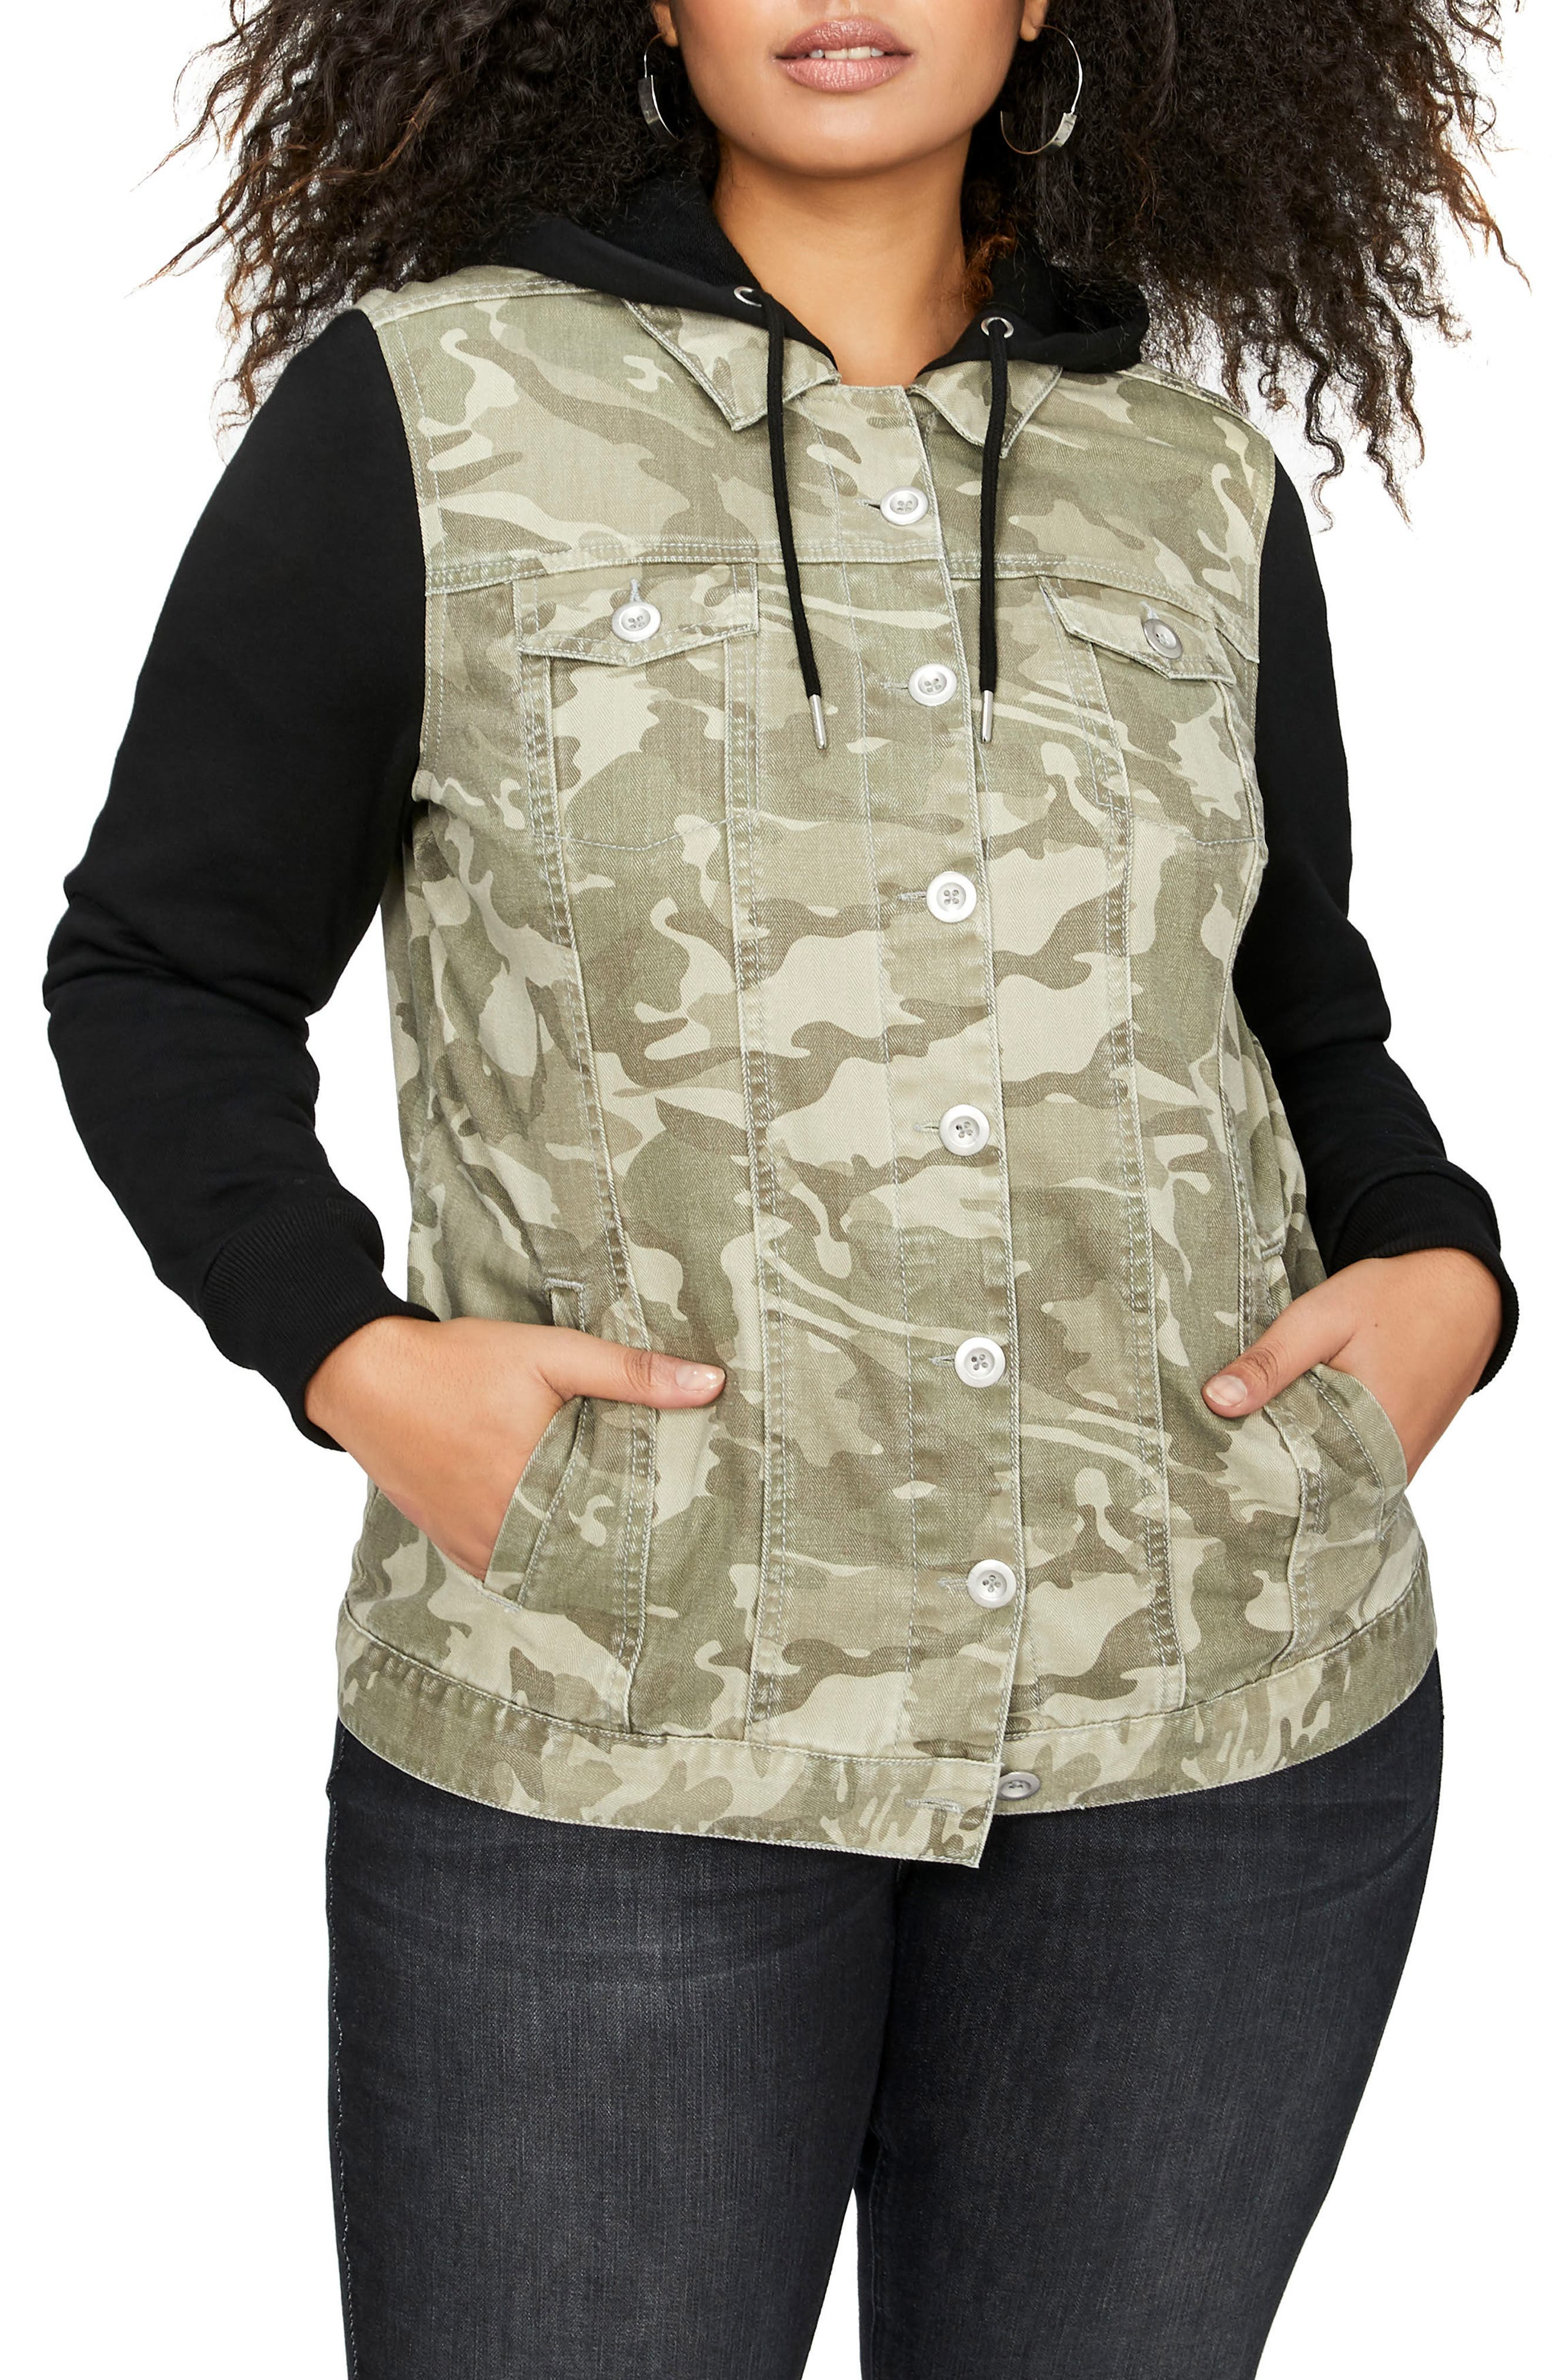 Main Image - ADDITION ELLE LOVE AND LEGEND Hooded Camo Jacket with Knit Sleeves (Plus Size)